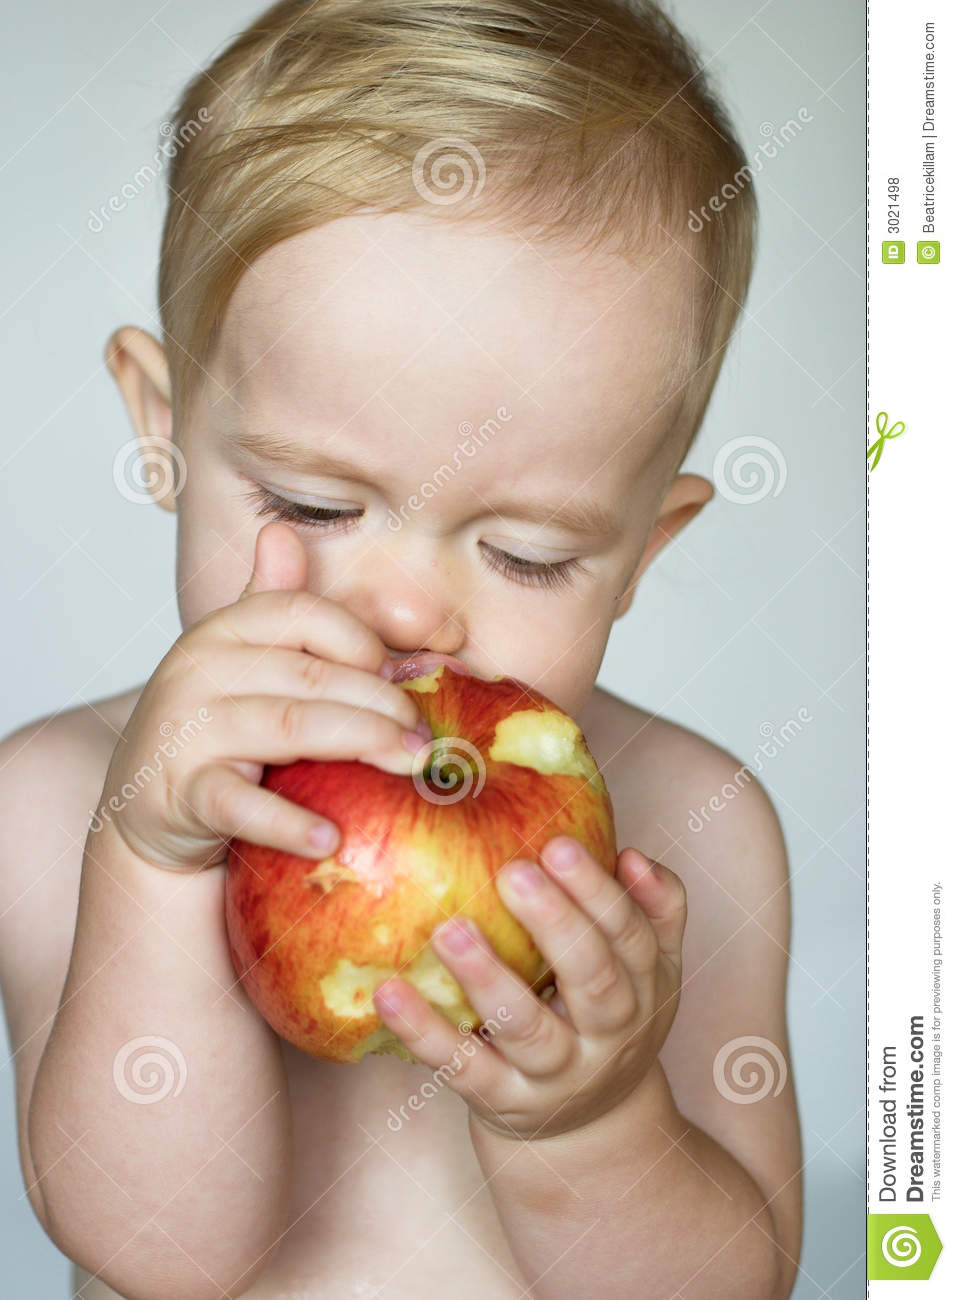 Toddler Eating Apple Royalty Free Stock Photos   Image  3021498